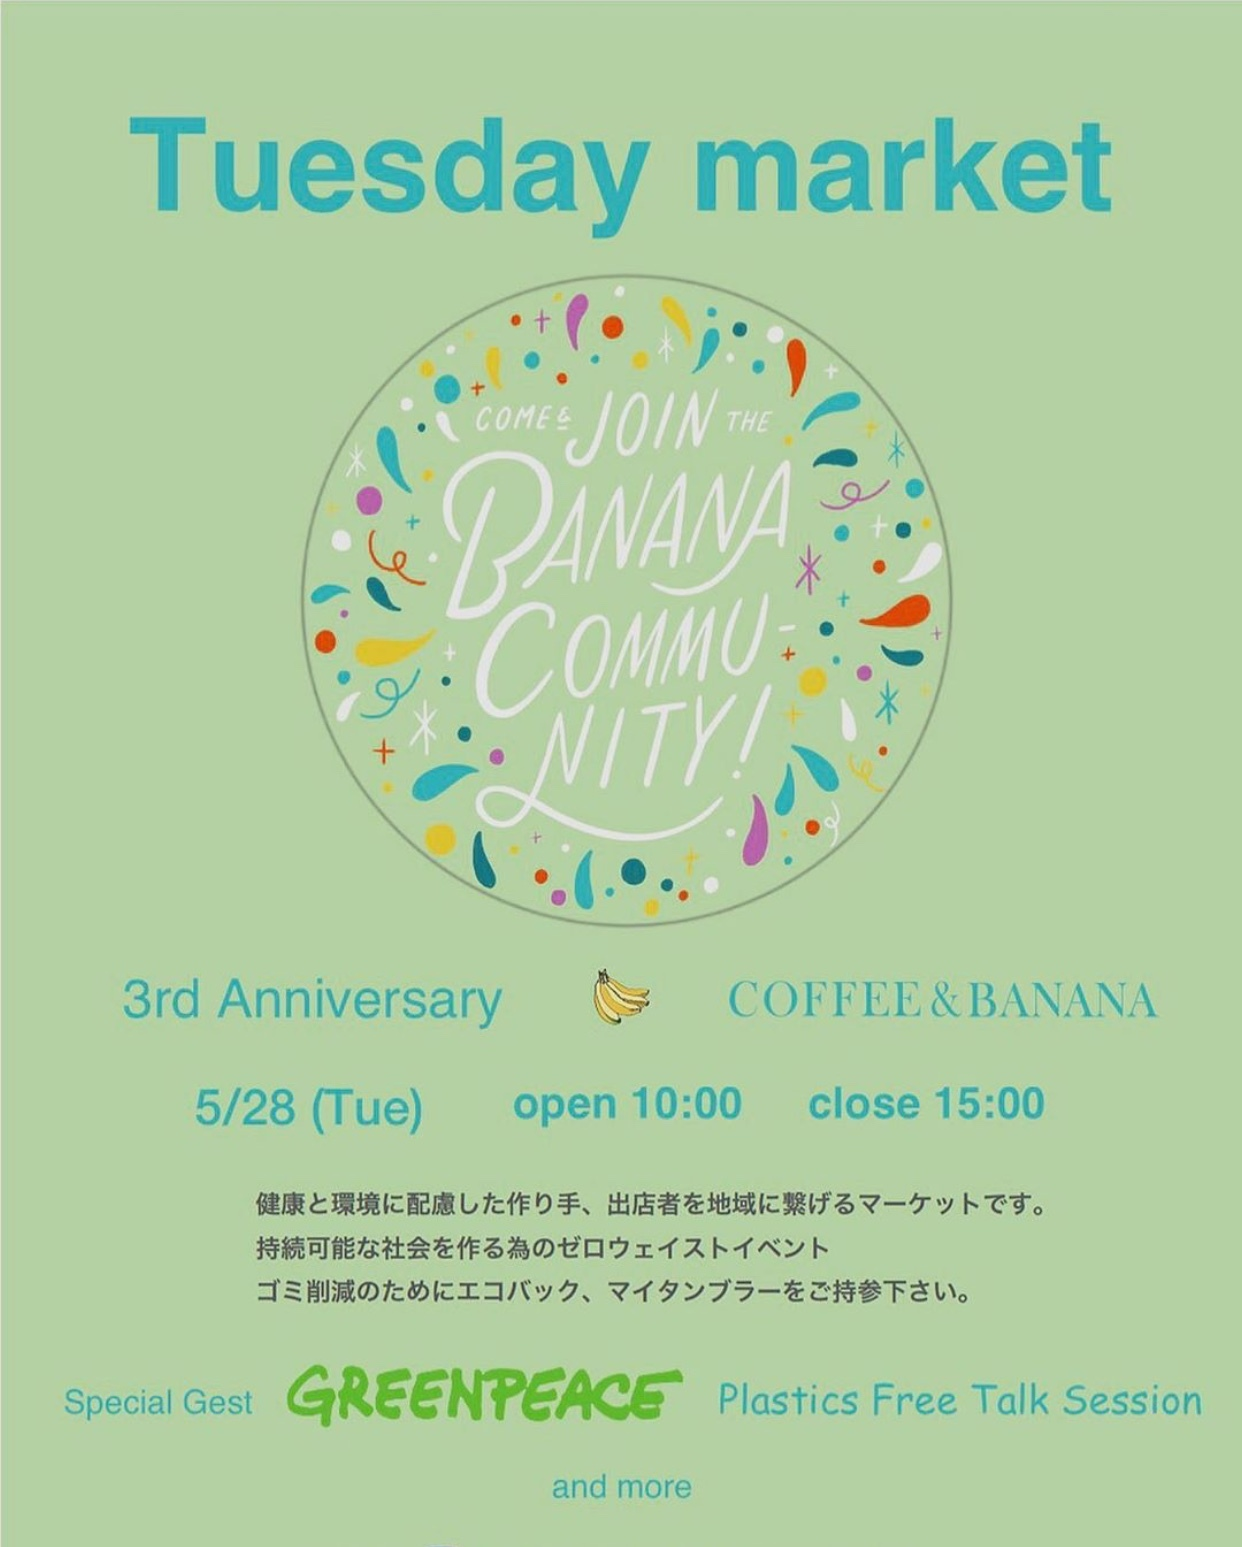 28日(火)は「TUESDAY MARKET」!_f0046663_15144329.jpg